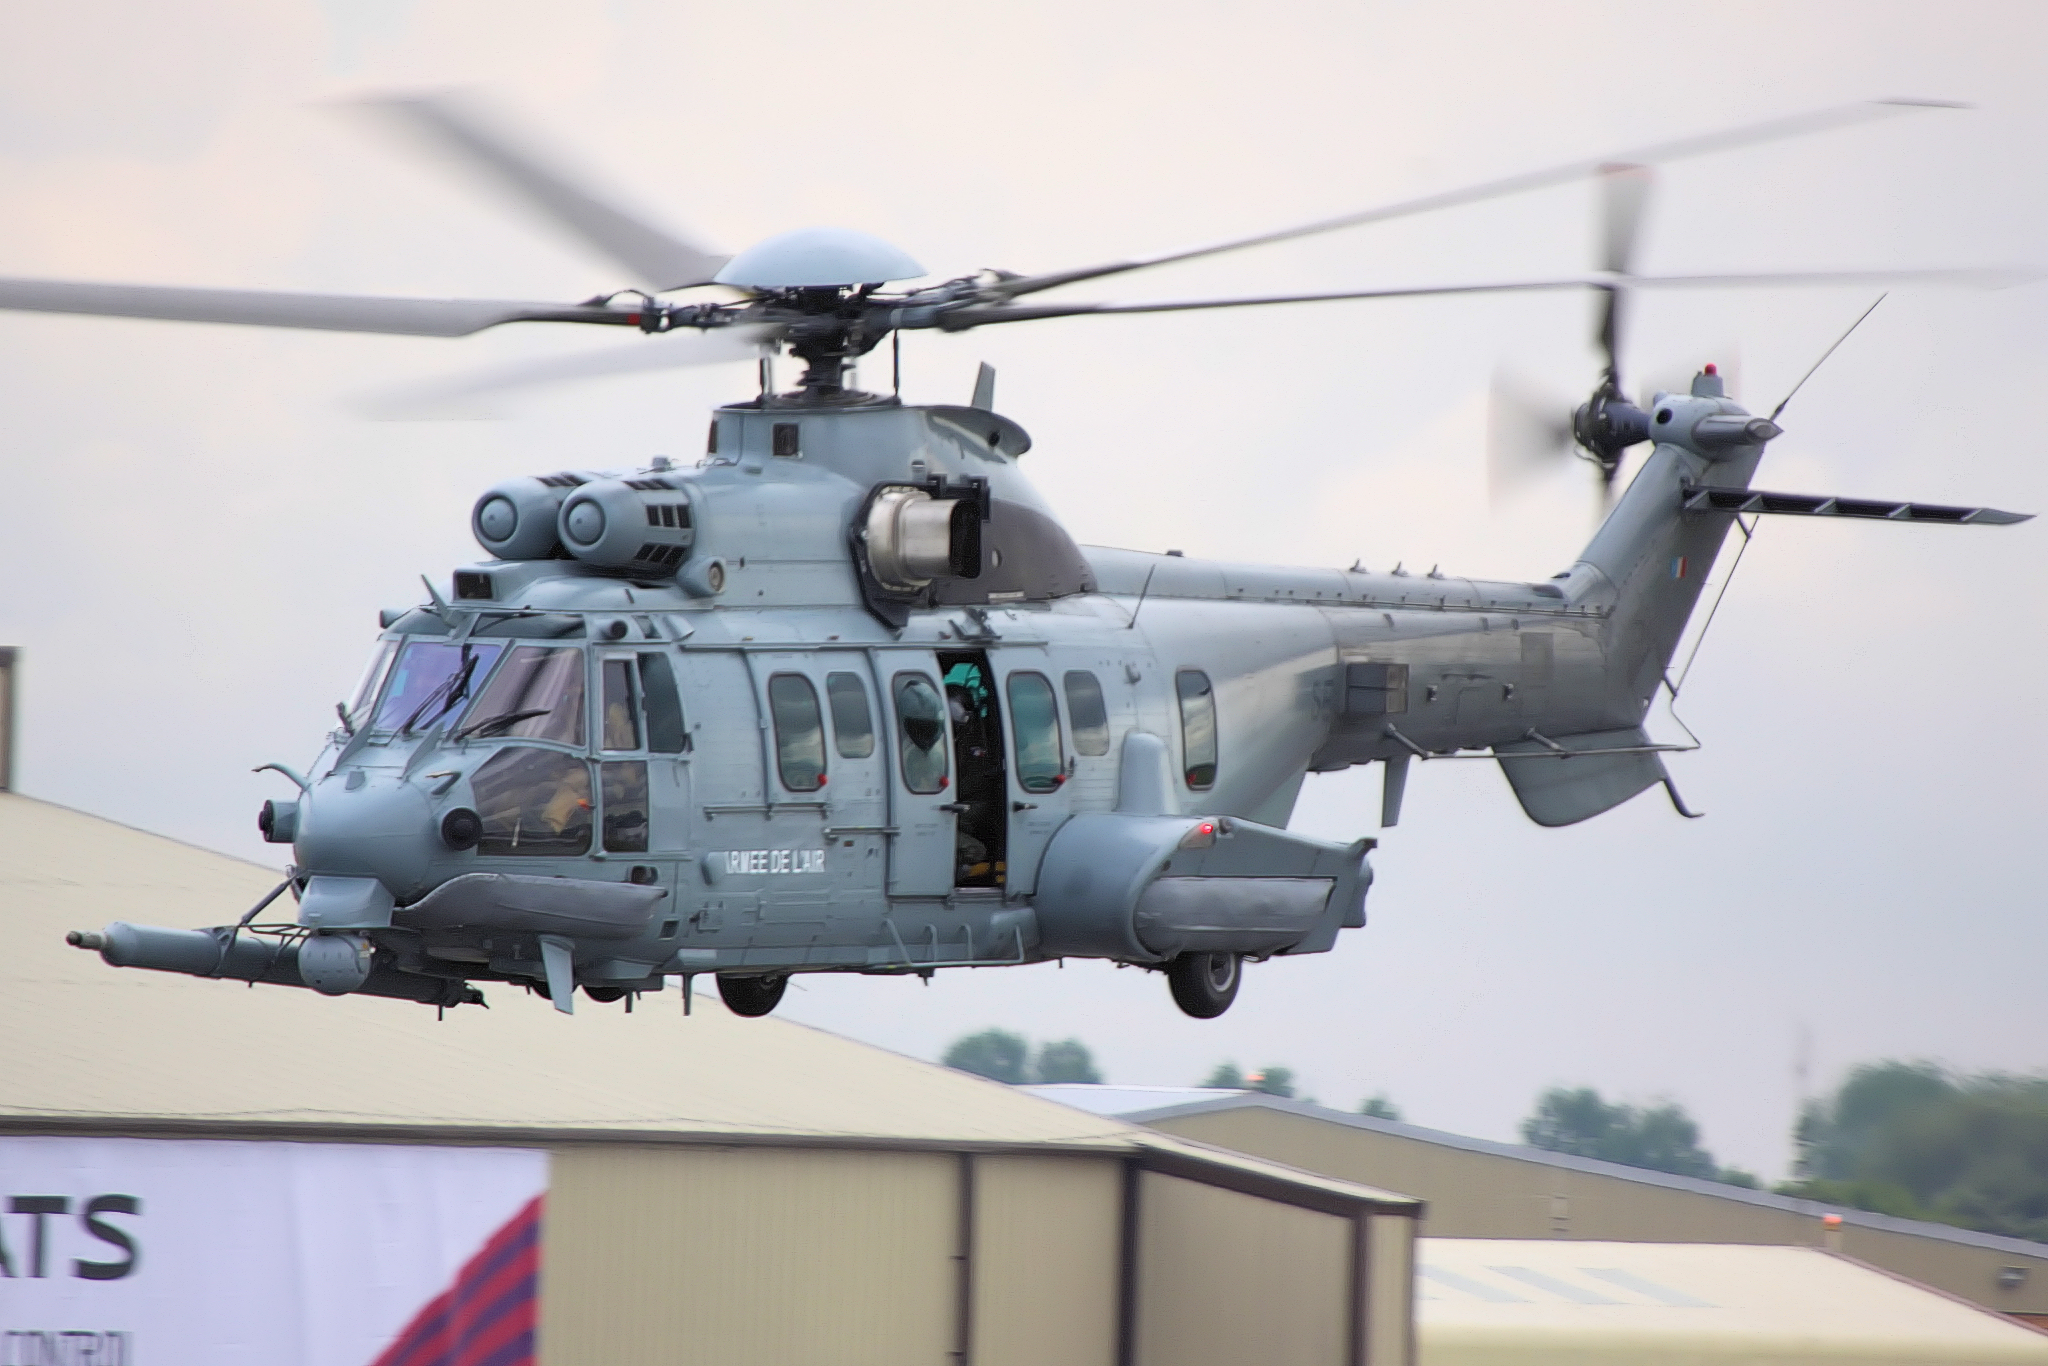 A Eurocopter EC725 Caracal during the Royal International Air Tatoo airshow.